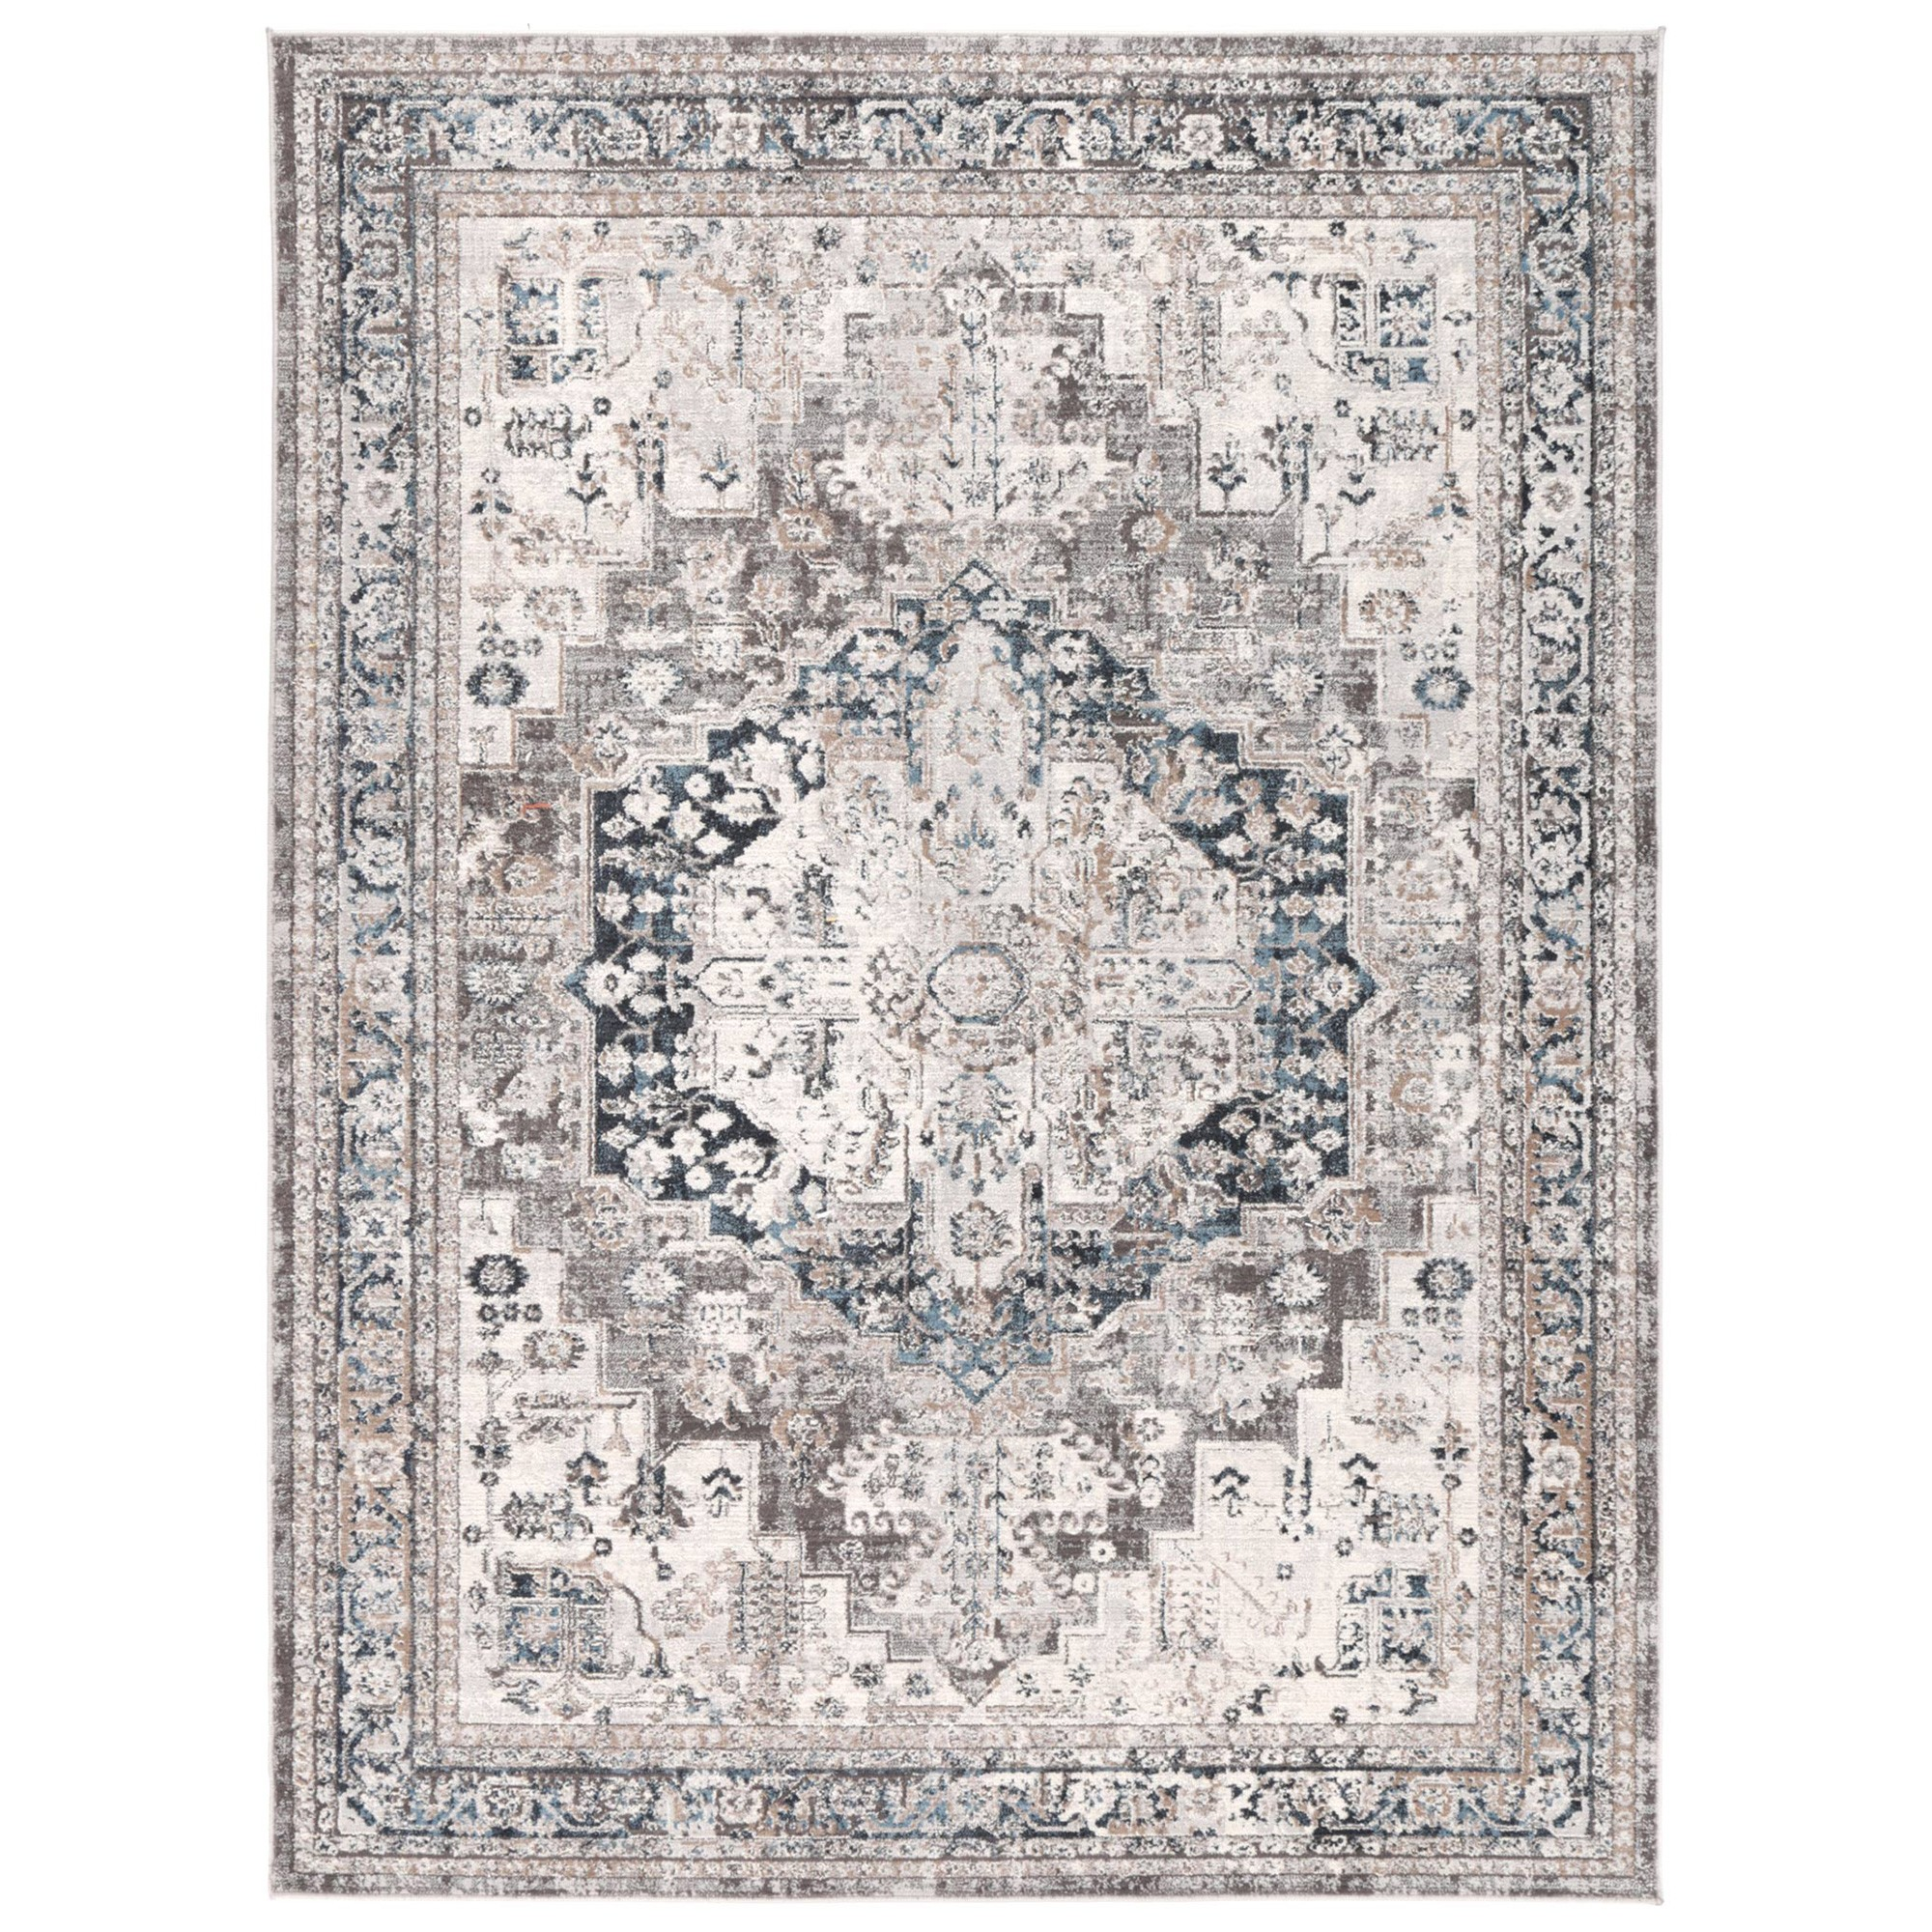 Havana No.05 Transitional Oriental Rug, 380x280cm